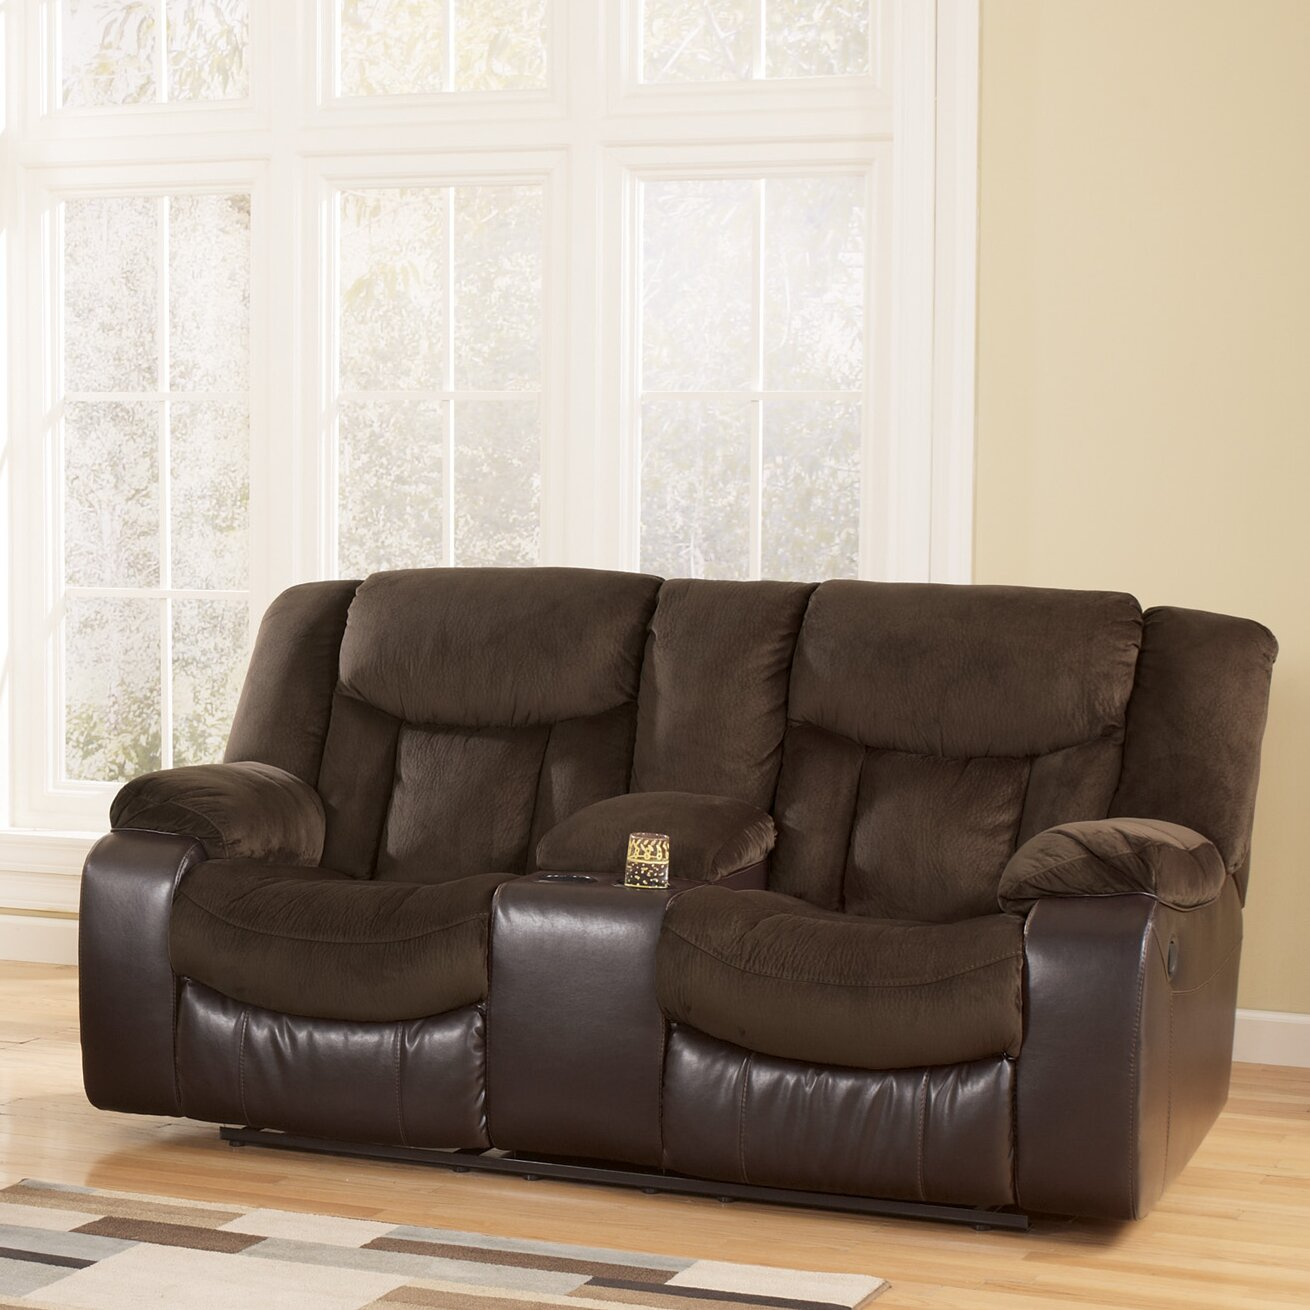 Signature Design By Ashley Bay Double Reclining Loveseat Reviews Wayfair